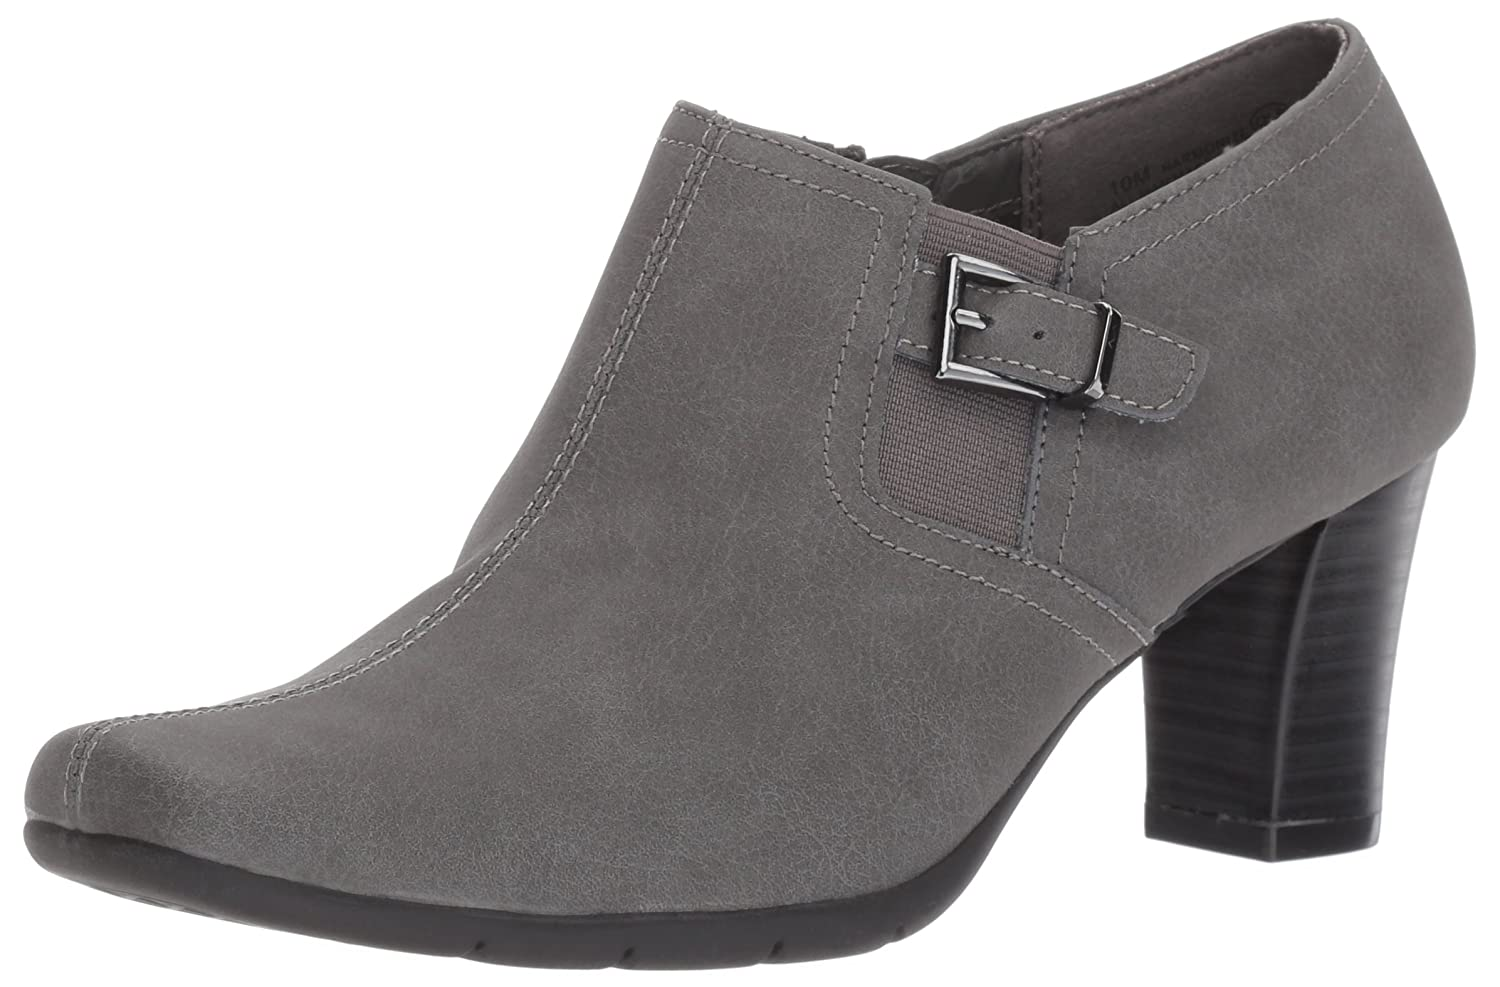 Aerosoles A2 by Women's Harmonize Ankle Boot B073DL55JW 6 B(M) US|Grey